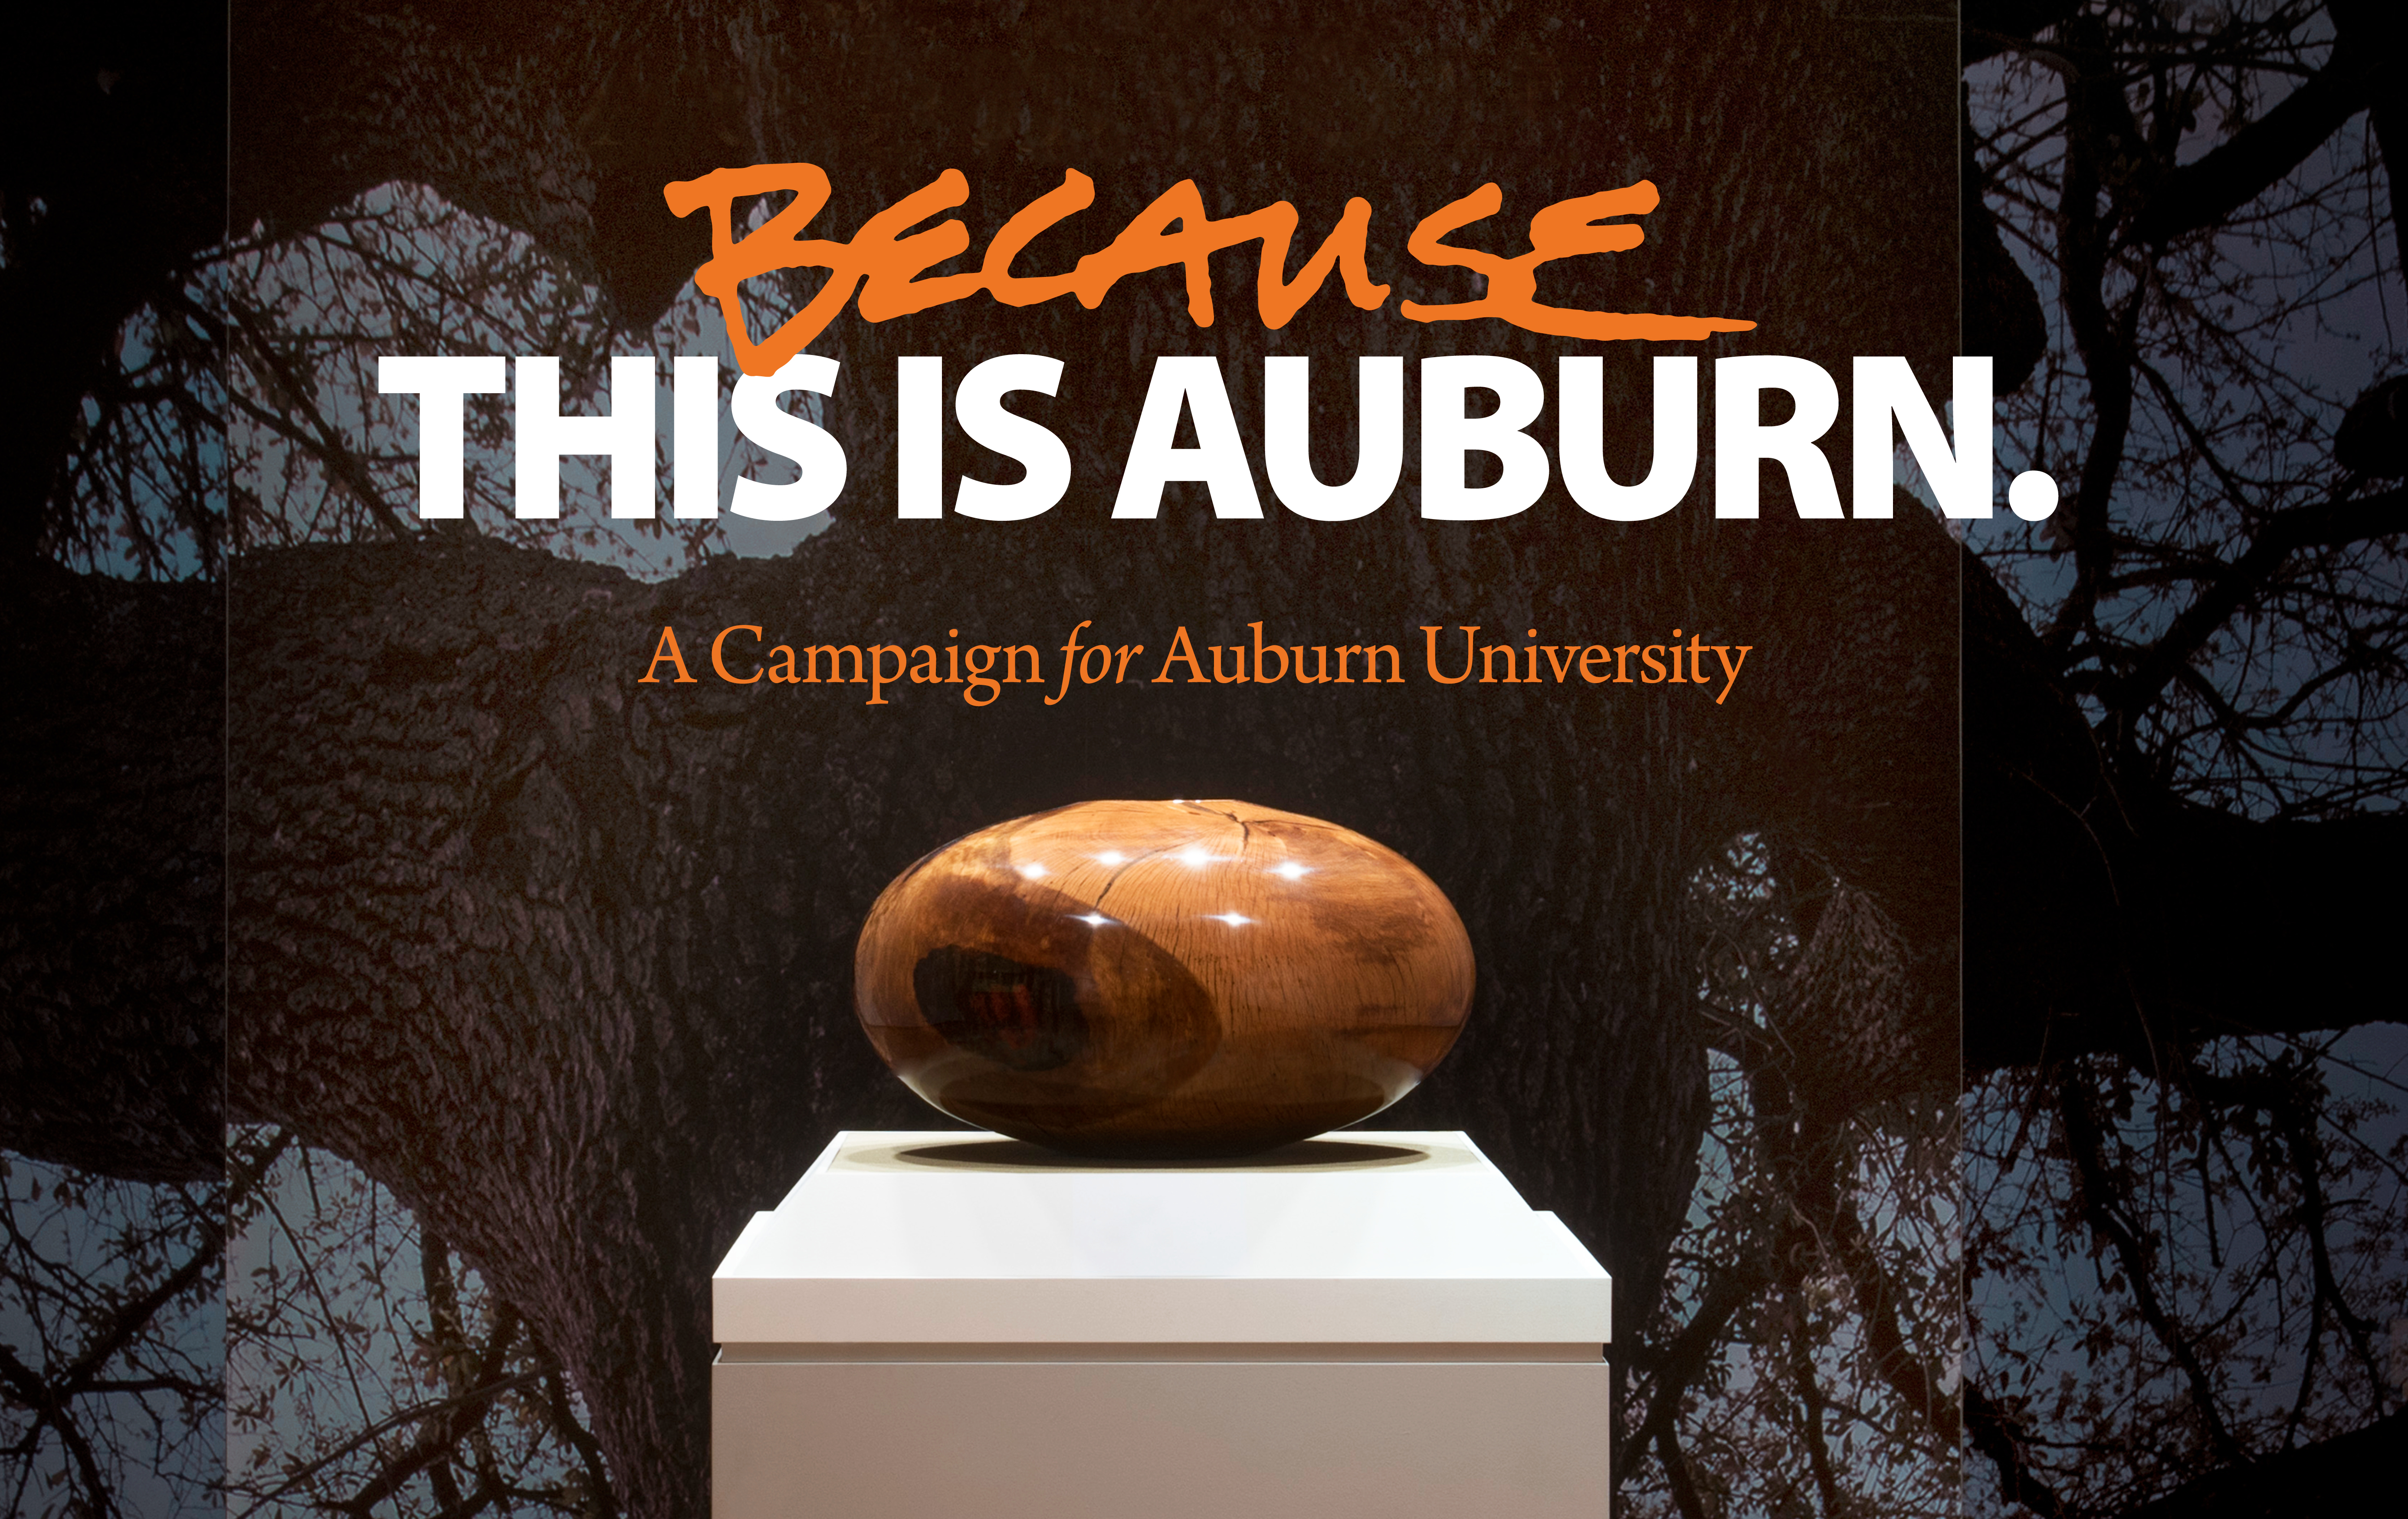 auburn university essay questions Study 6 essay questions flashcards from jon s on studyblue.